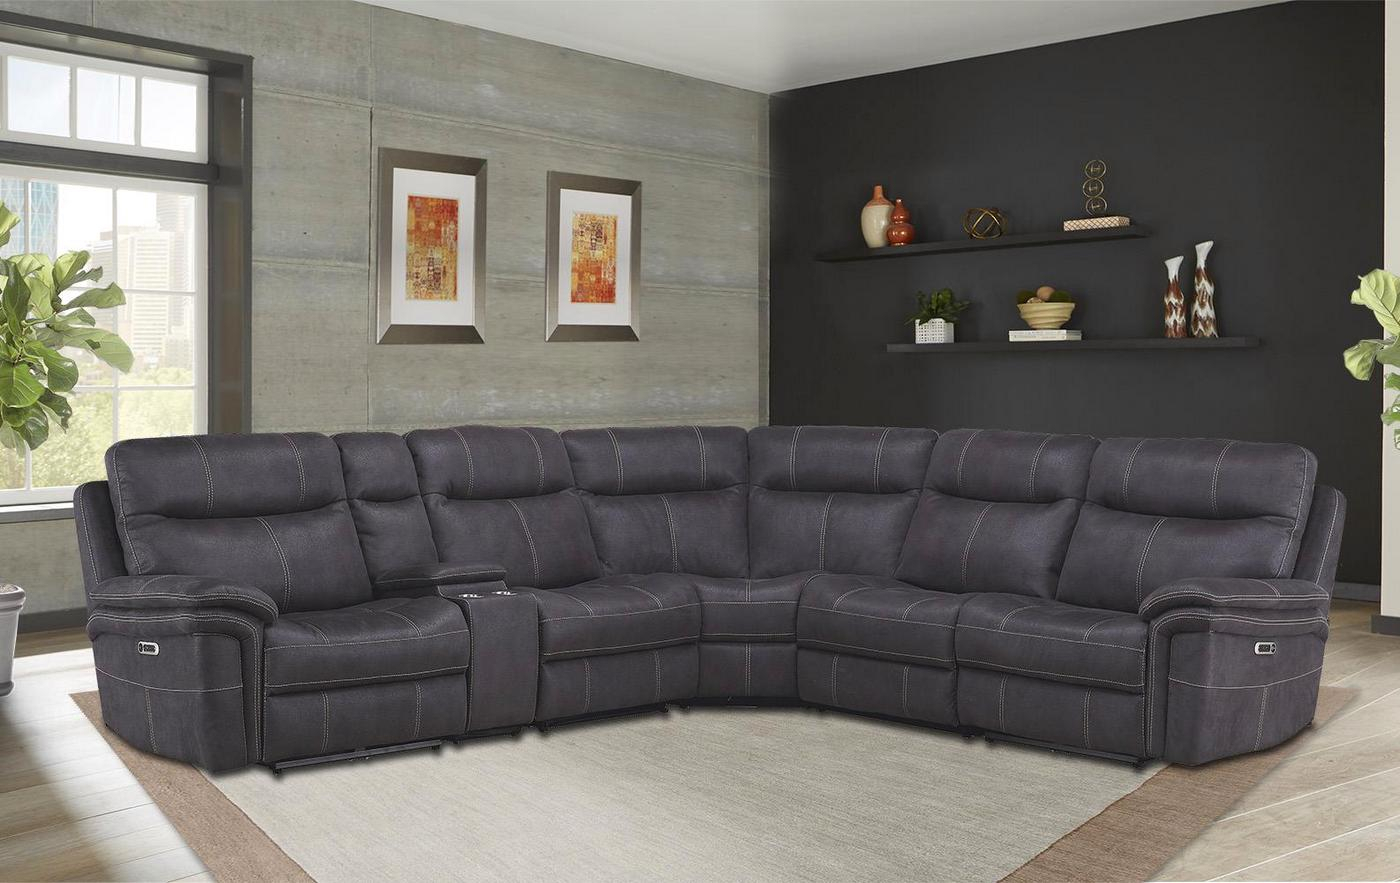 Mason Charcoal Powered Modular Sectional Sofa W/ Power For Armless Sectional Sofas (View 10 of 15)